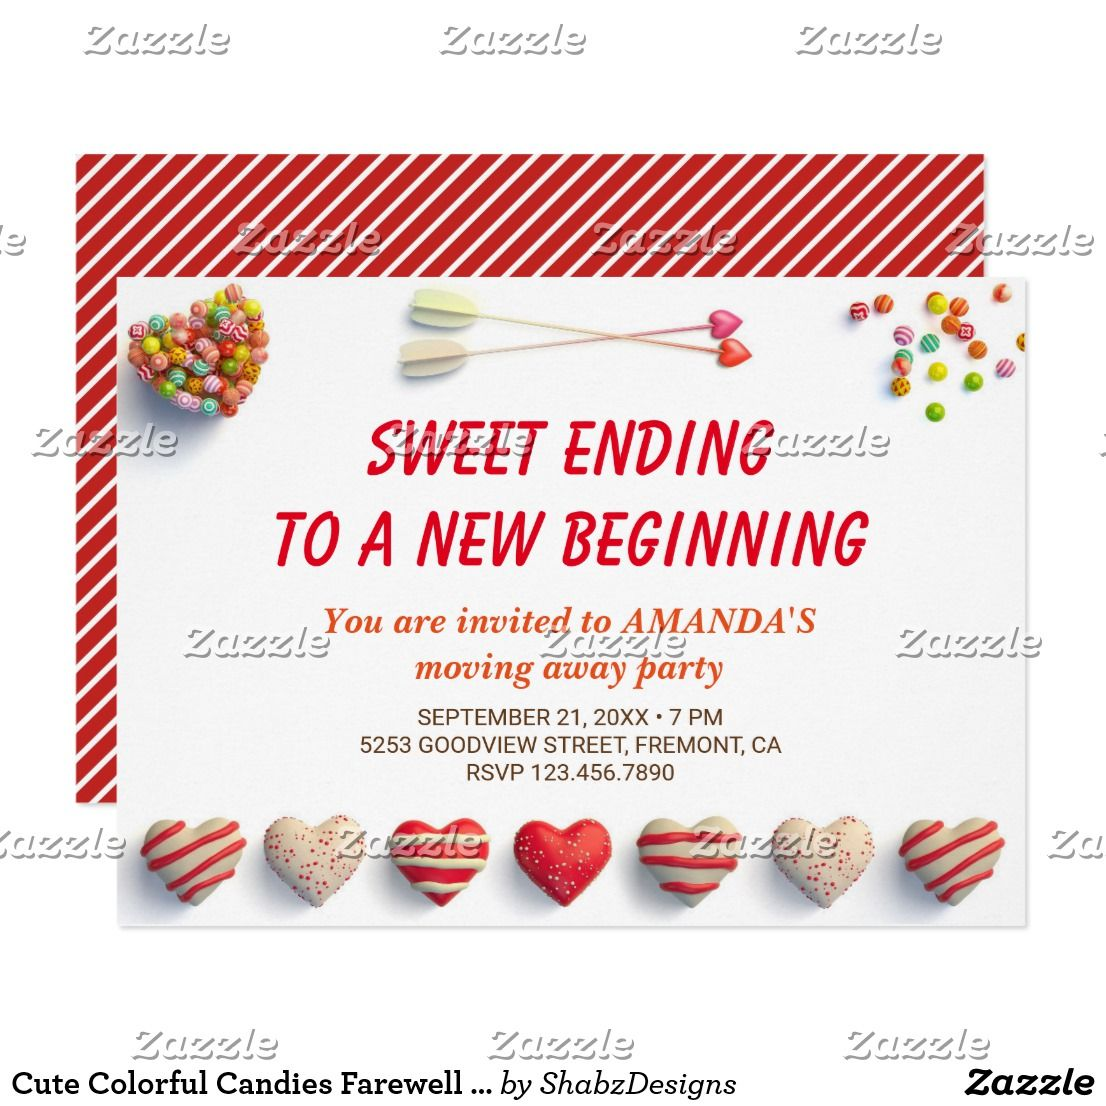 Cute Colorful Candies Farewell Party Invitation | Farewell parties ...